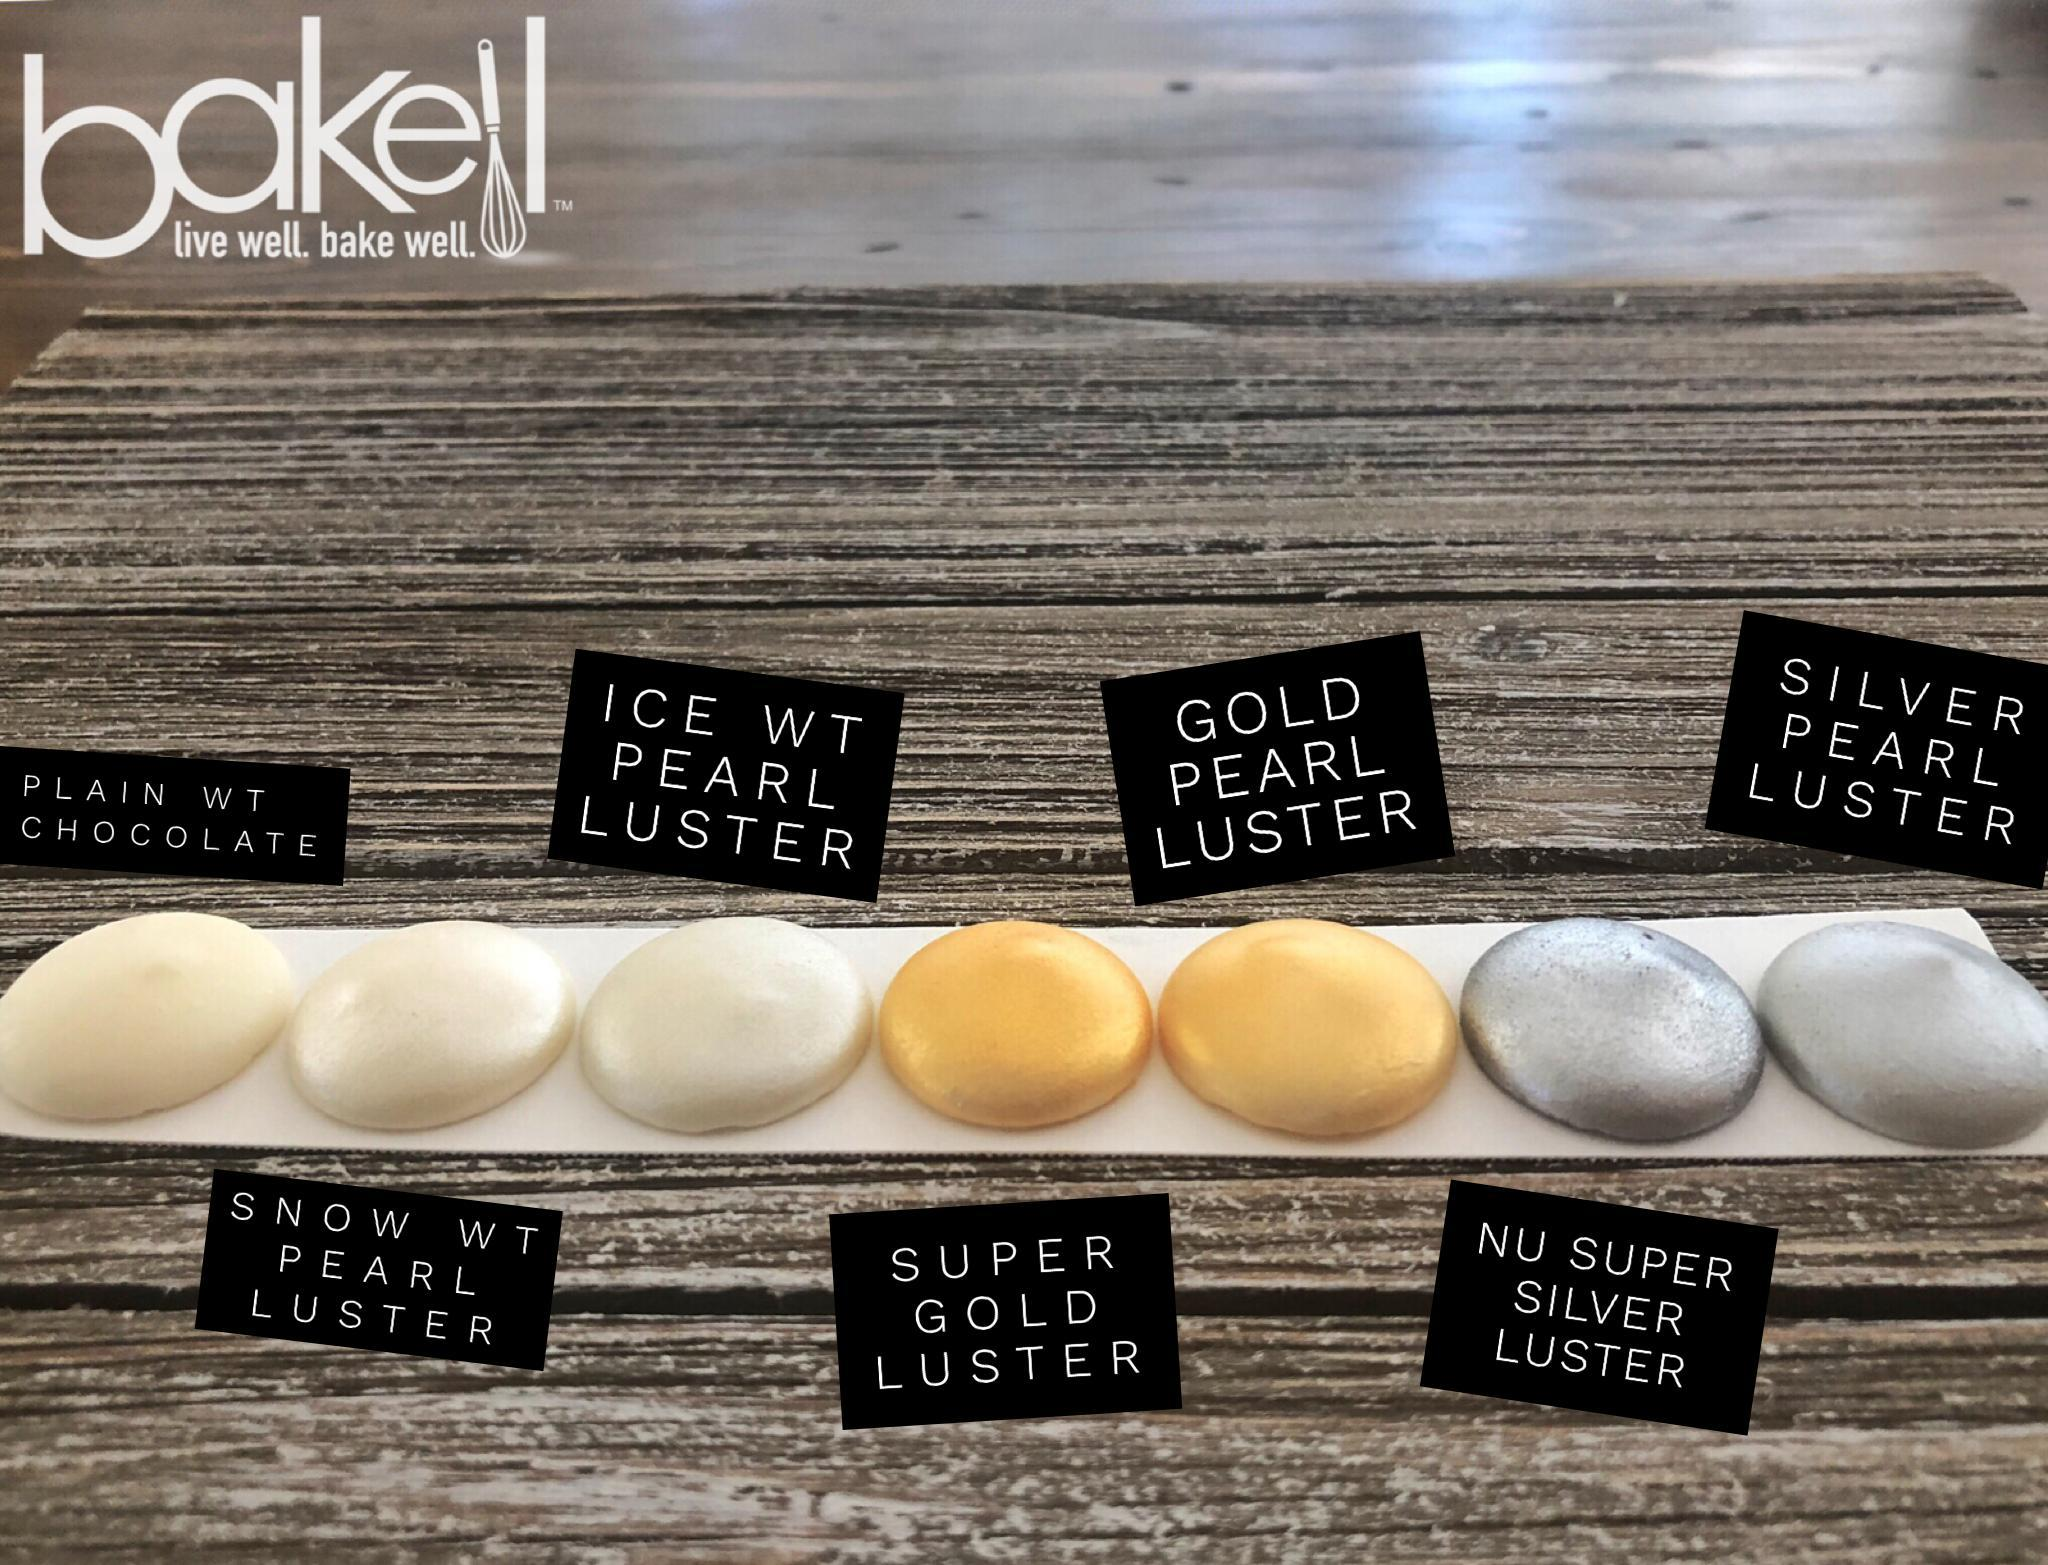 Luster Dust Color Chart_Gold Pearl Edible Luster Dust | FDA Approved | Bakell® #1 site for FDA Compliant edible glitter & edible dust | Bakell.com